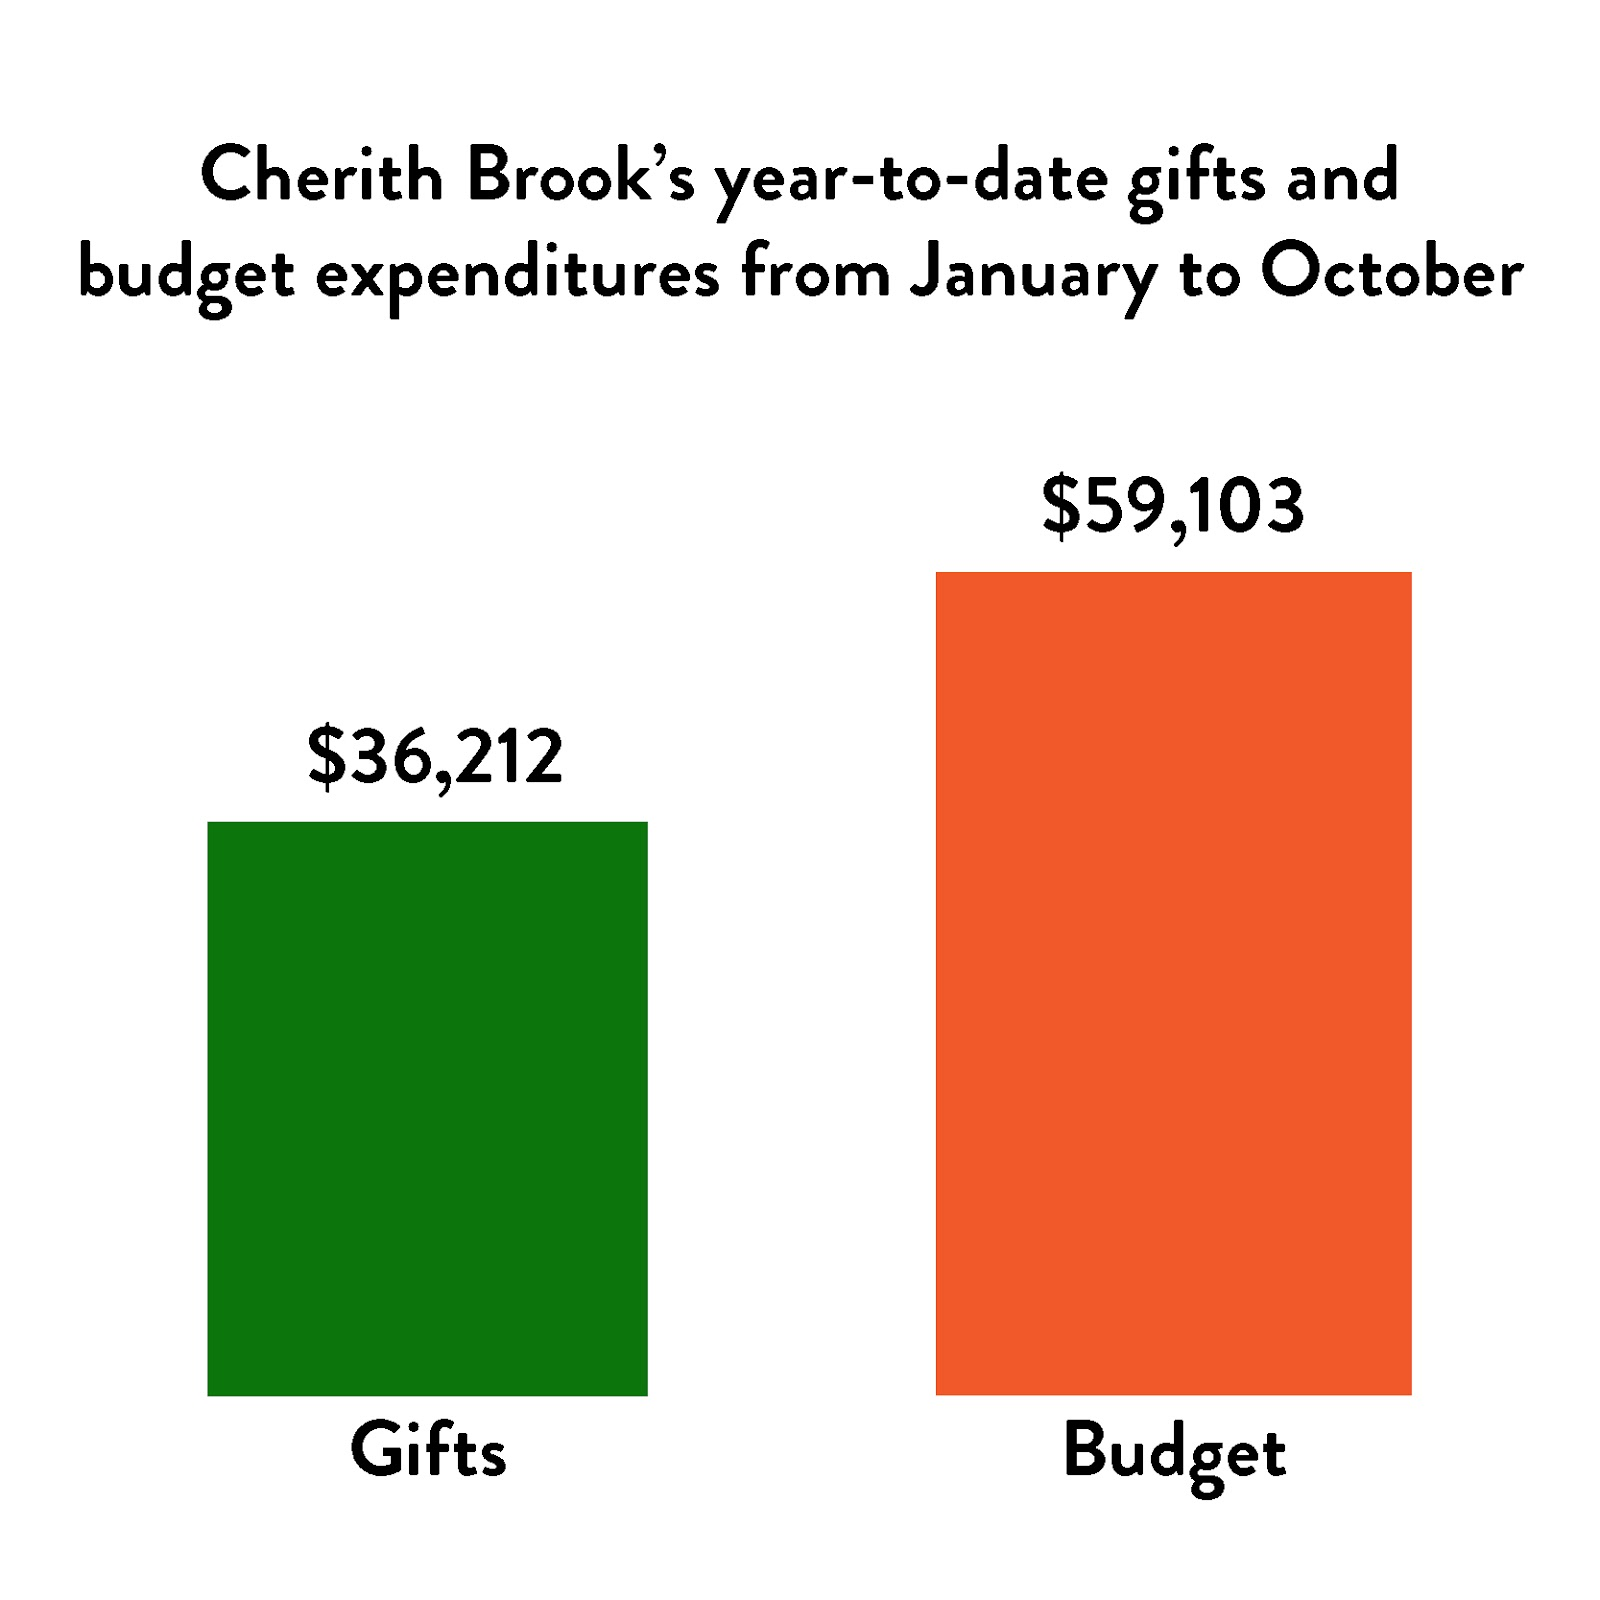 Graph showing Cherith's Brook budget from January to October was $59,103 and their Gifts amount was $36212